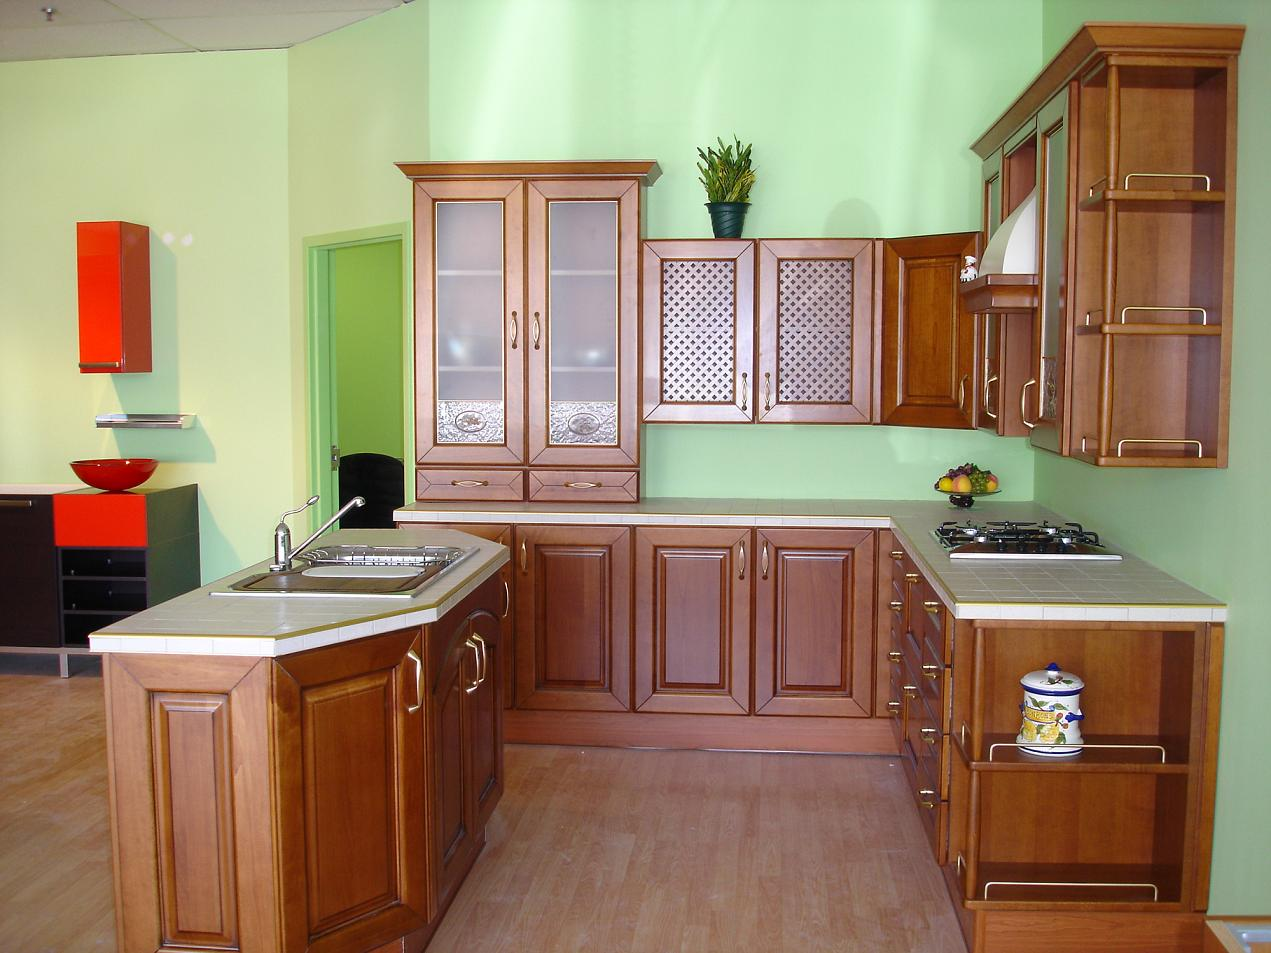 Kitchen Design Ideas With Oak Cabinets medium hardwood kitchen ideas pictures of kitchens traditional